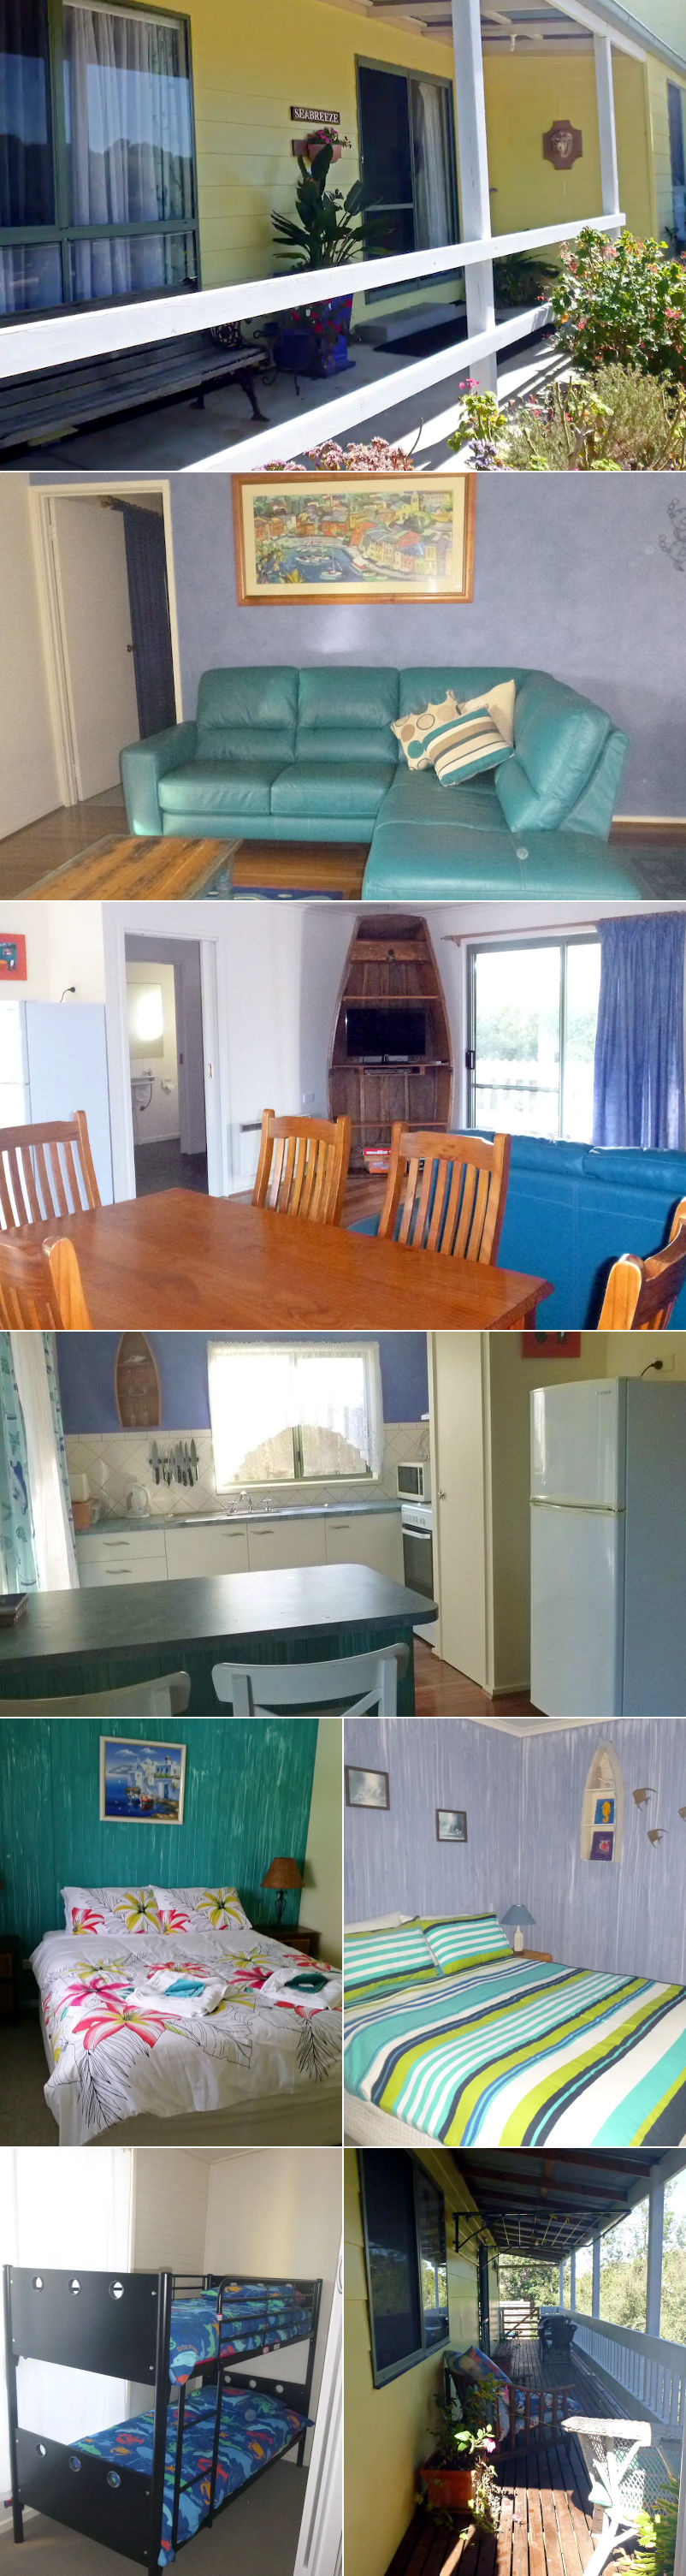 Whale Cottage - Seabreeze apartment